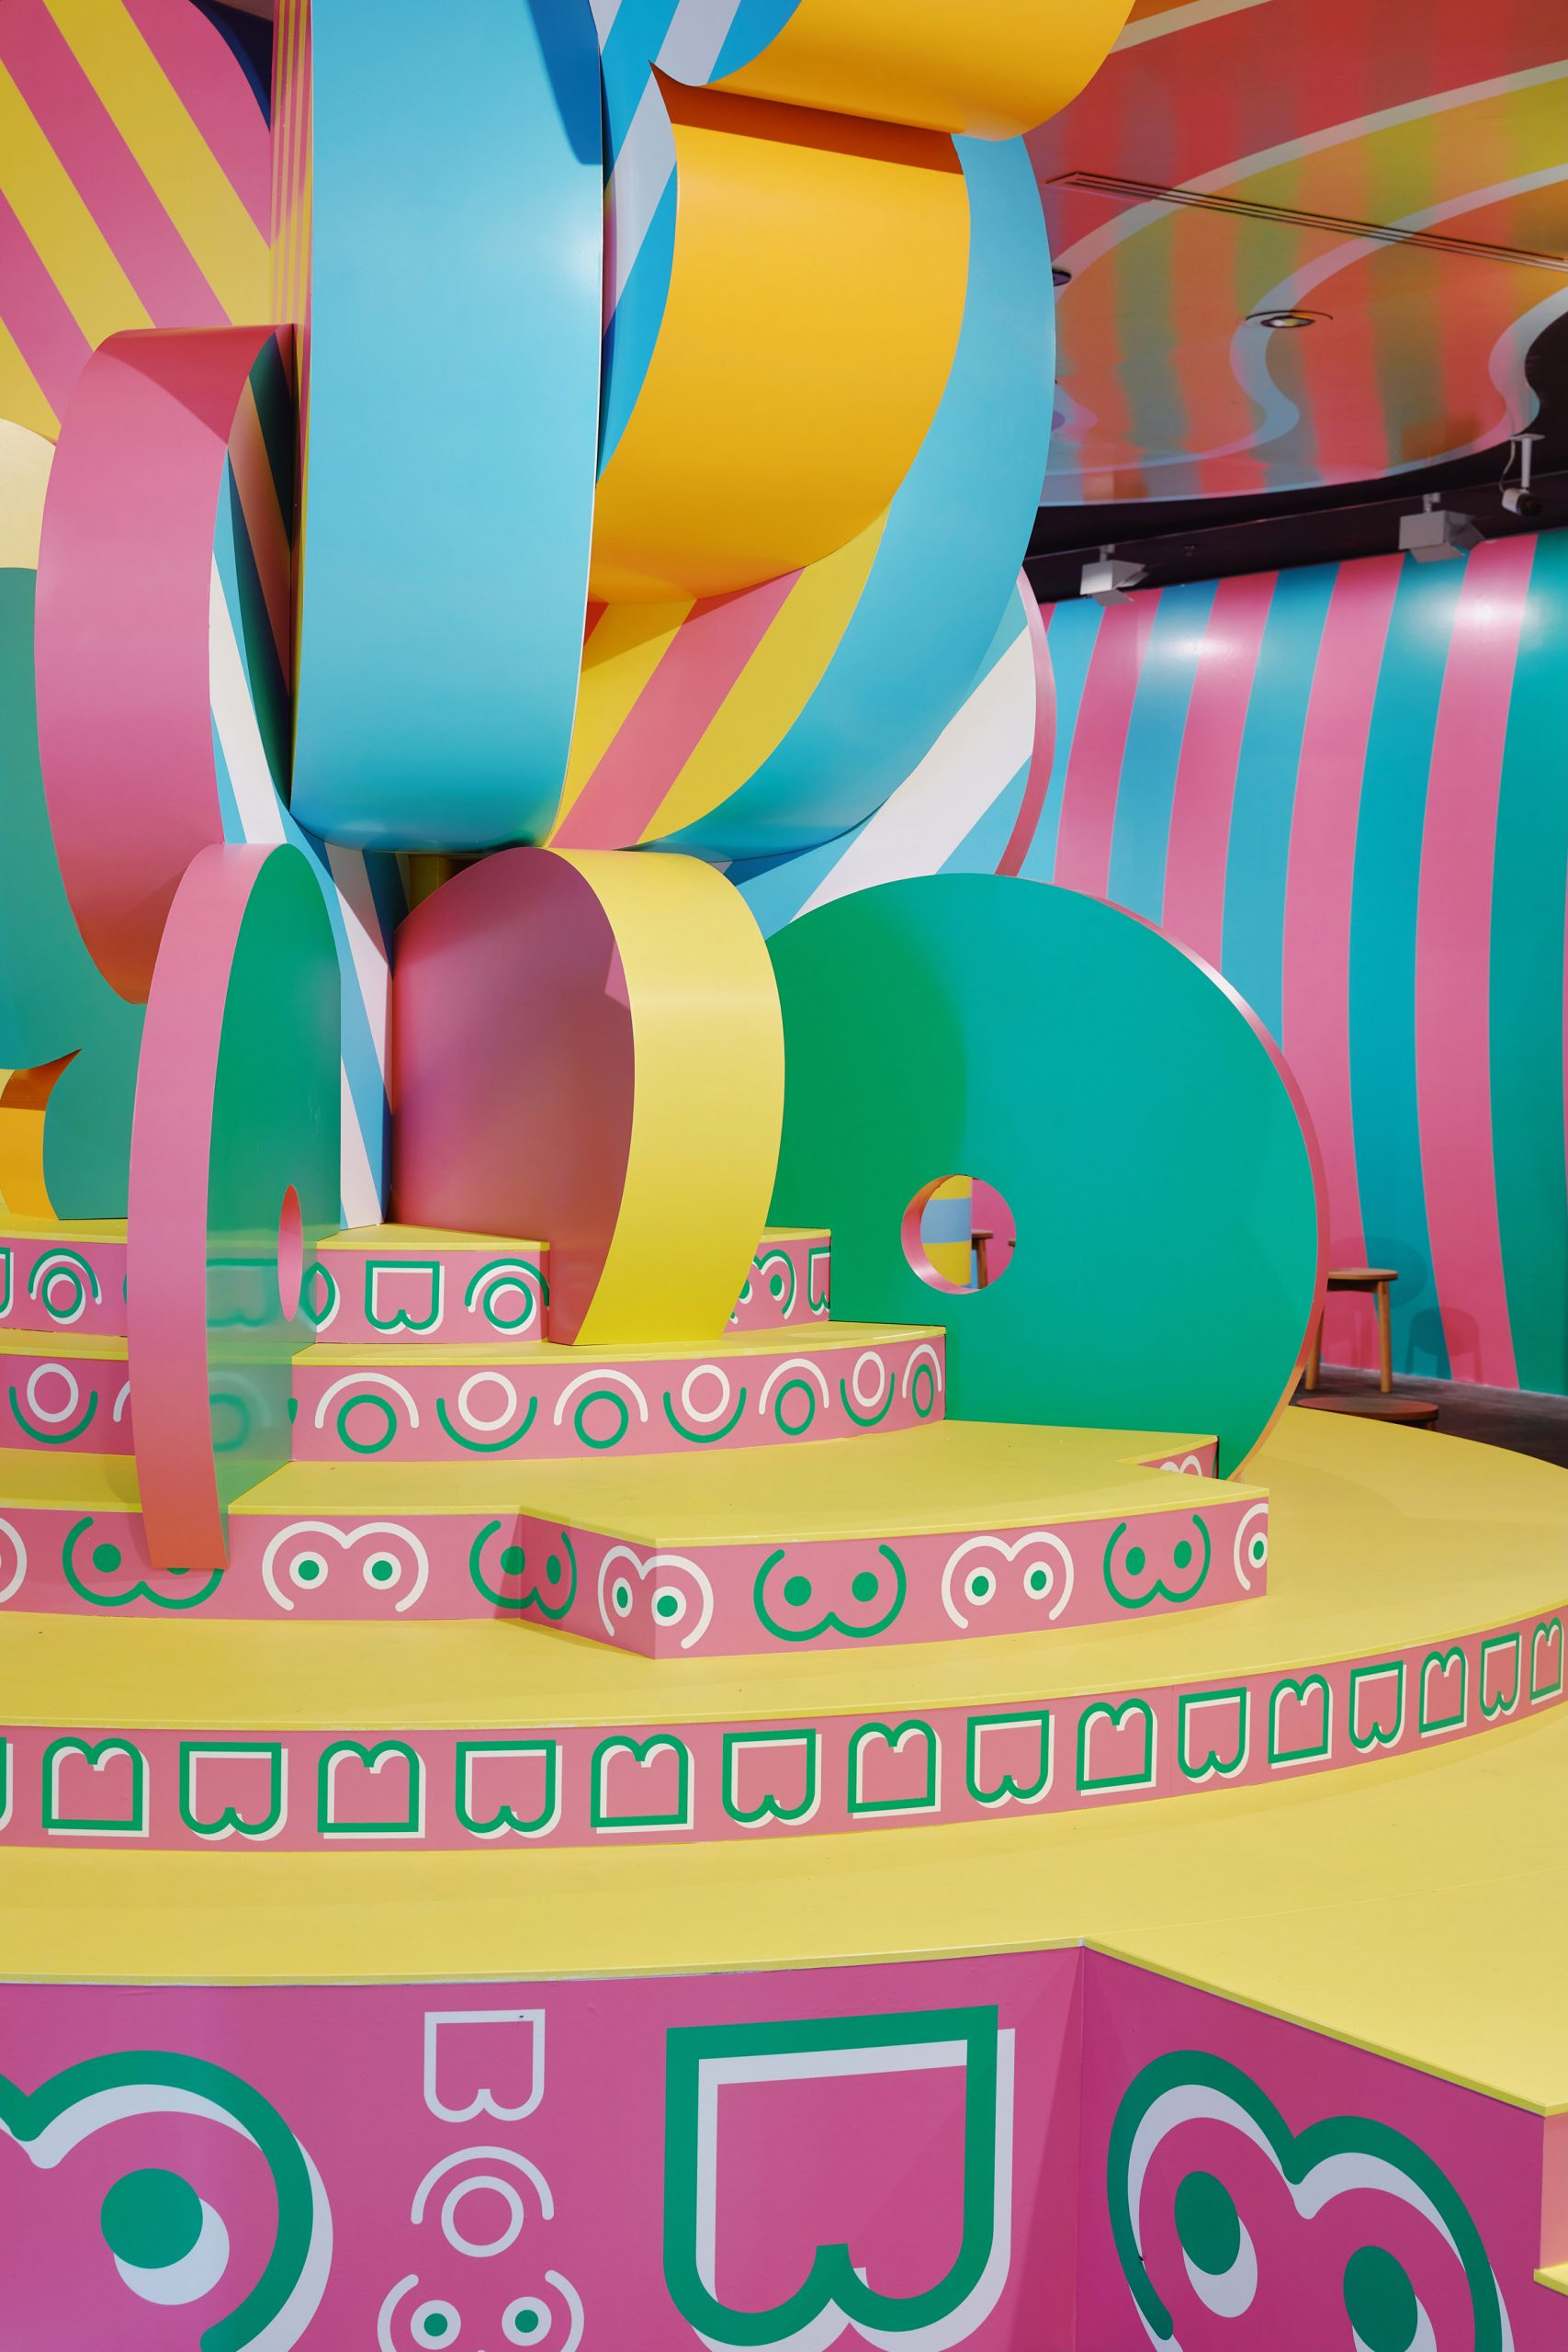 NGV installation by Adam Nathaniel Furman and Sibling Architecture